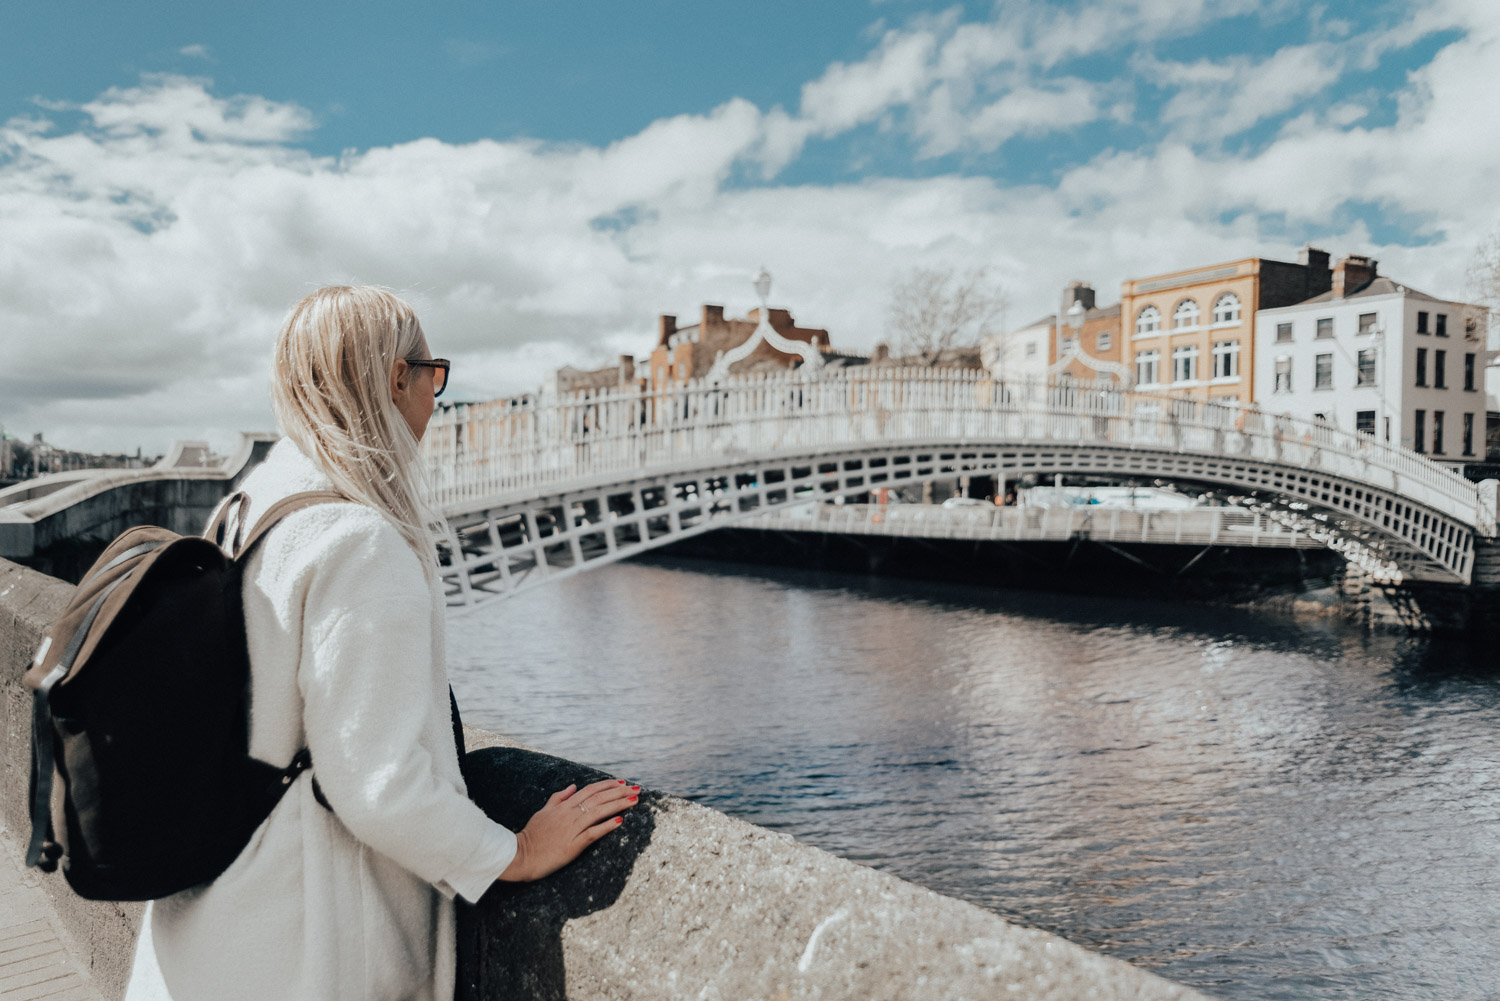 Woman in White Coat & Sandqvist bag standing by Ha'penny Bridge in Dublin